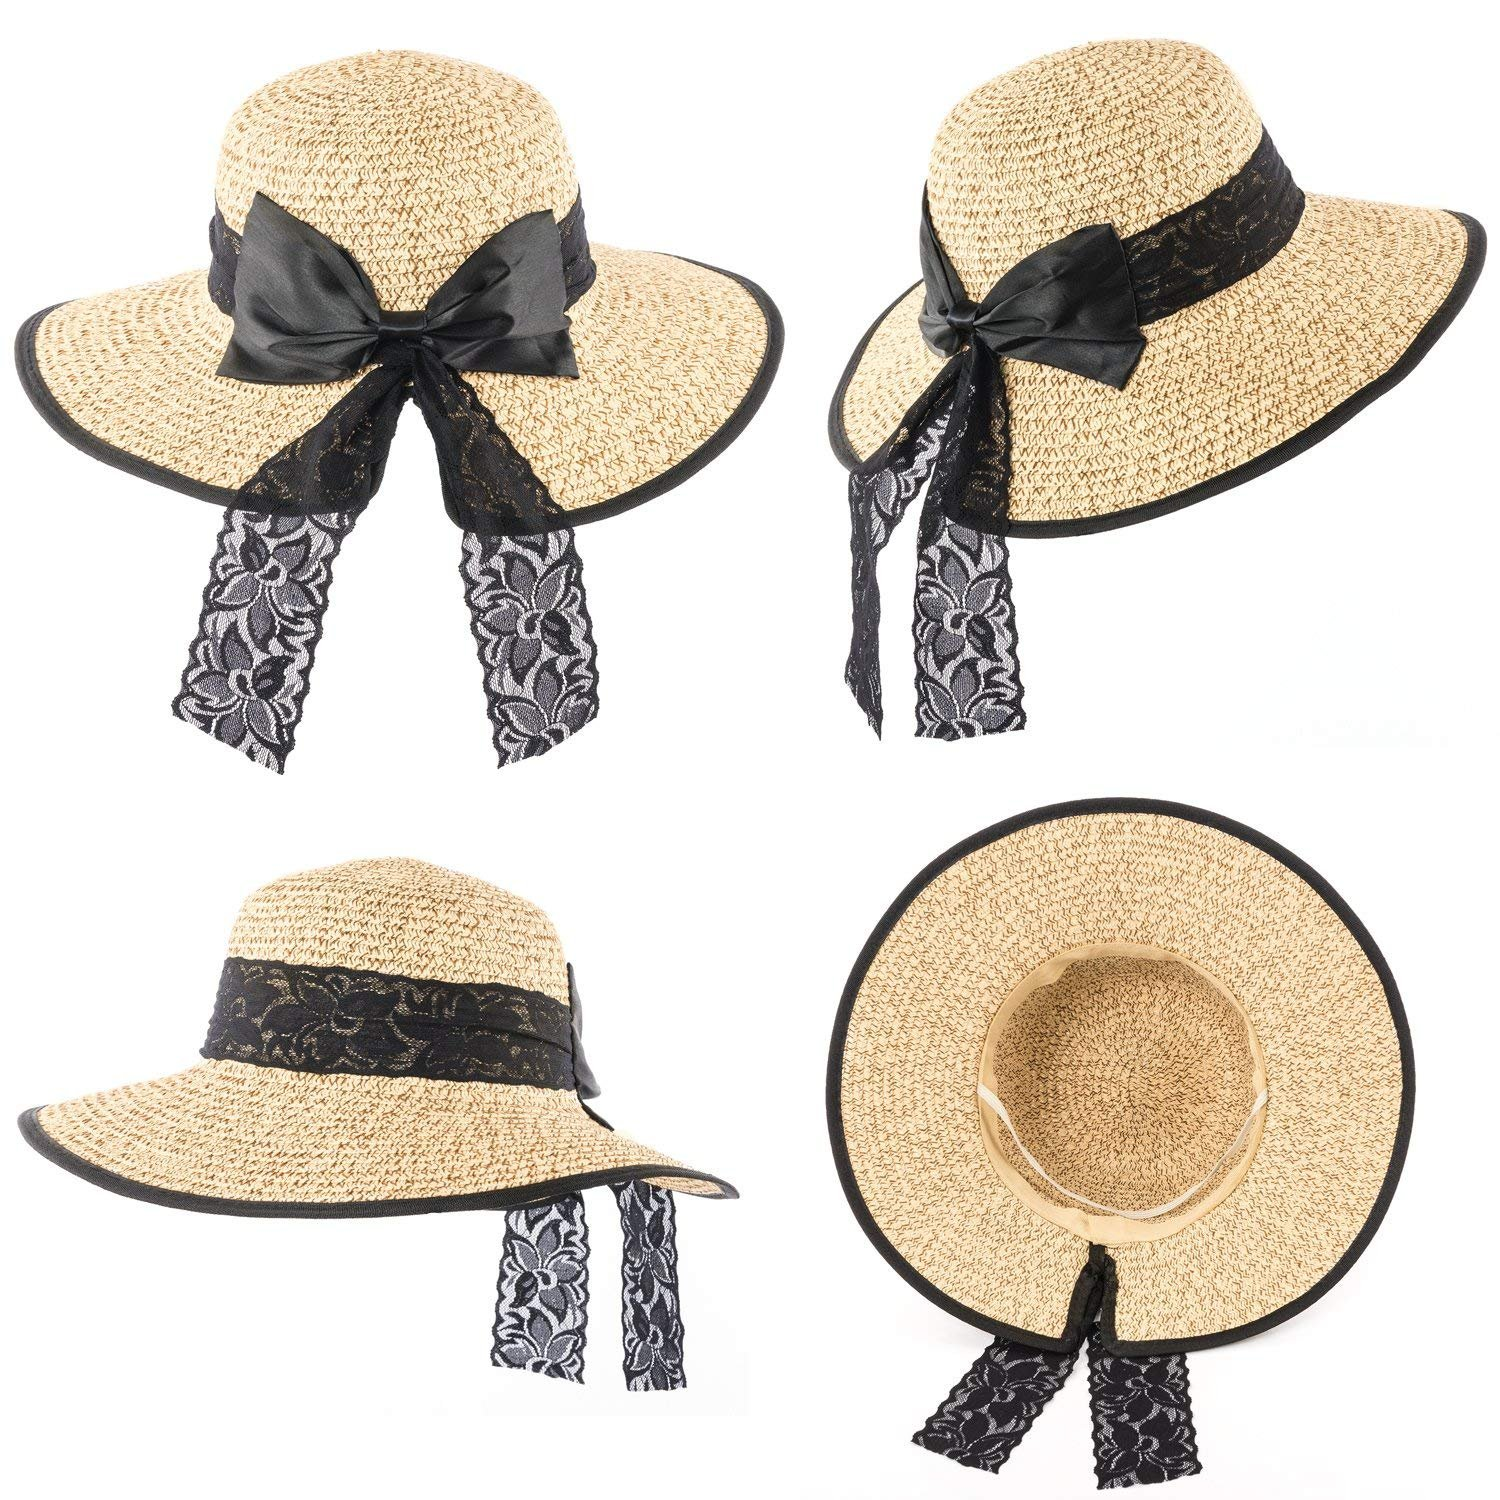 4840feaa269a3 Amazon.com  Hollosport Women Fashion Beach Straw Sun Hat